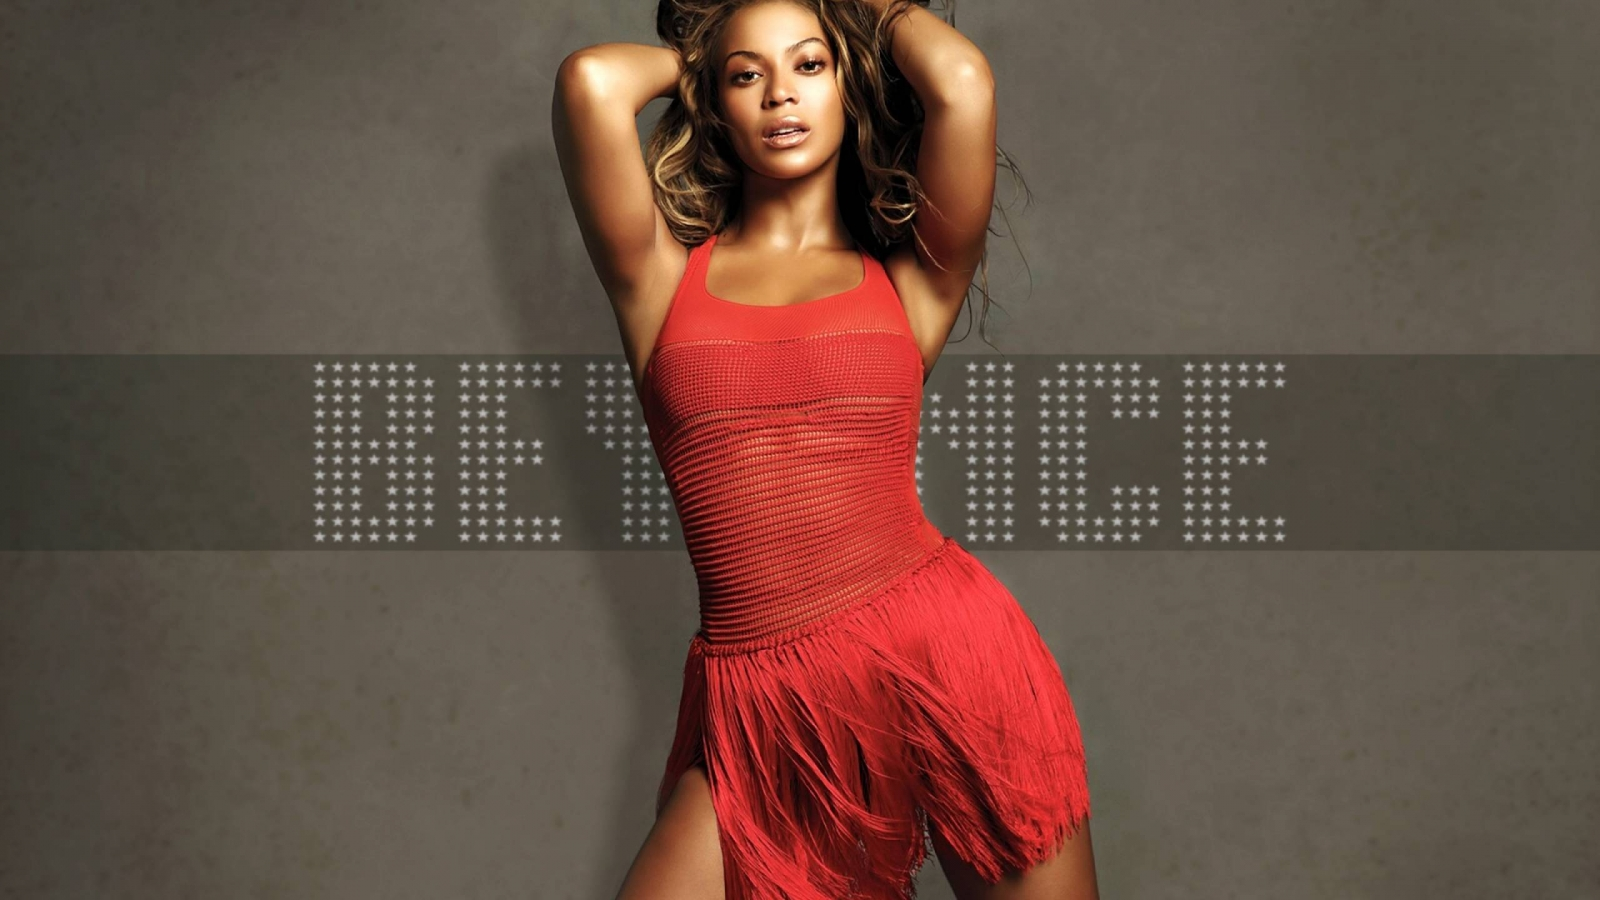 Beautiful Beyonce for 1600 x 900 HDTV resolution